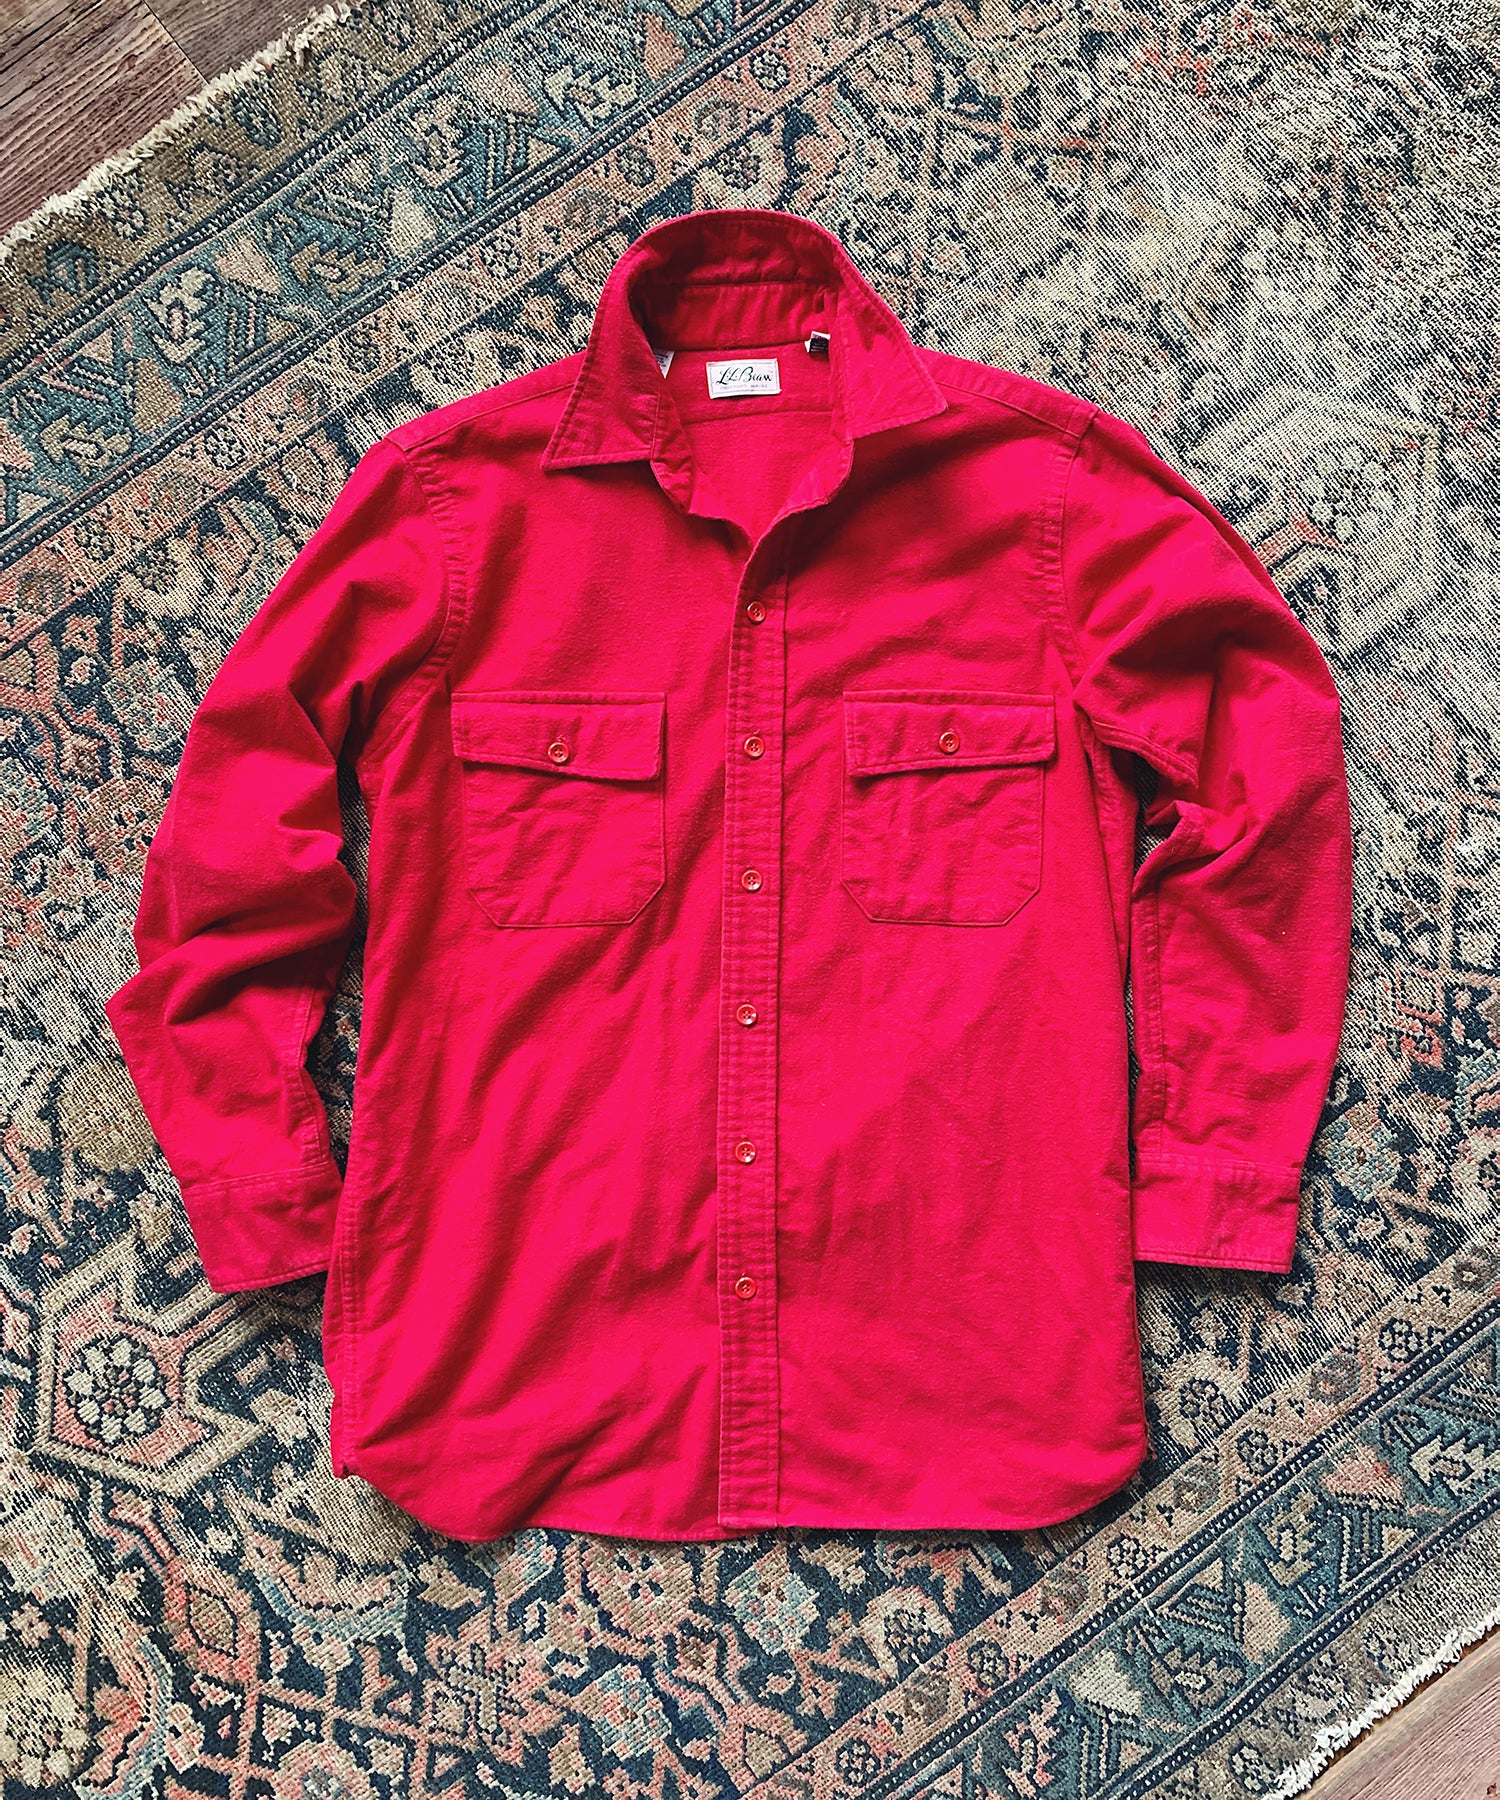 Item #20 - Todd Snyder x Wooden Sleepers 1970's Chamois Shirt in Red - SOLD OUT